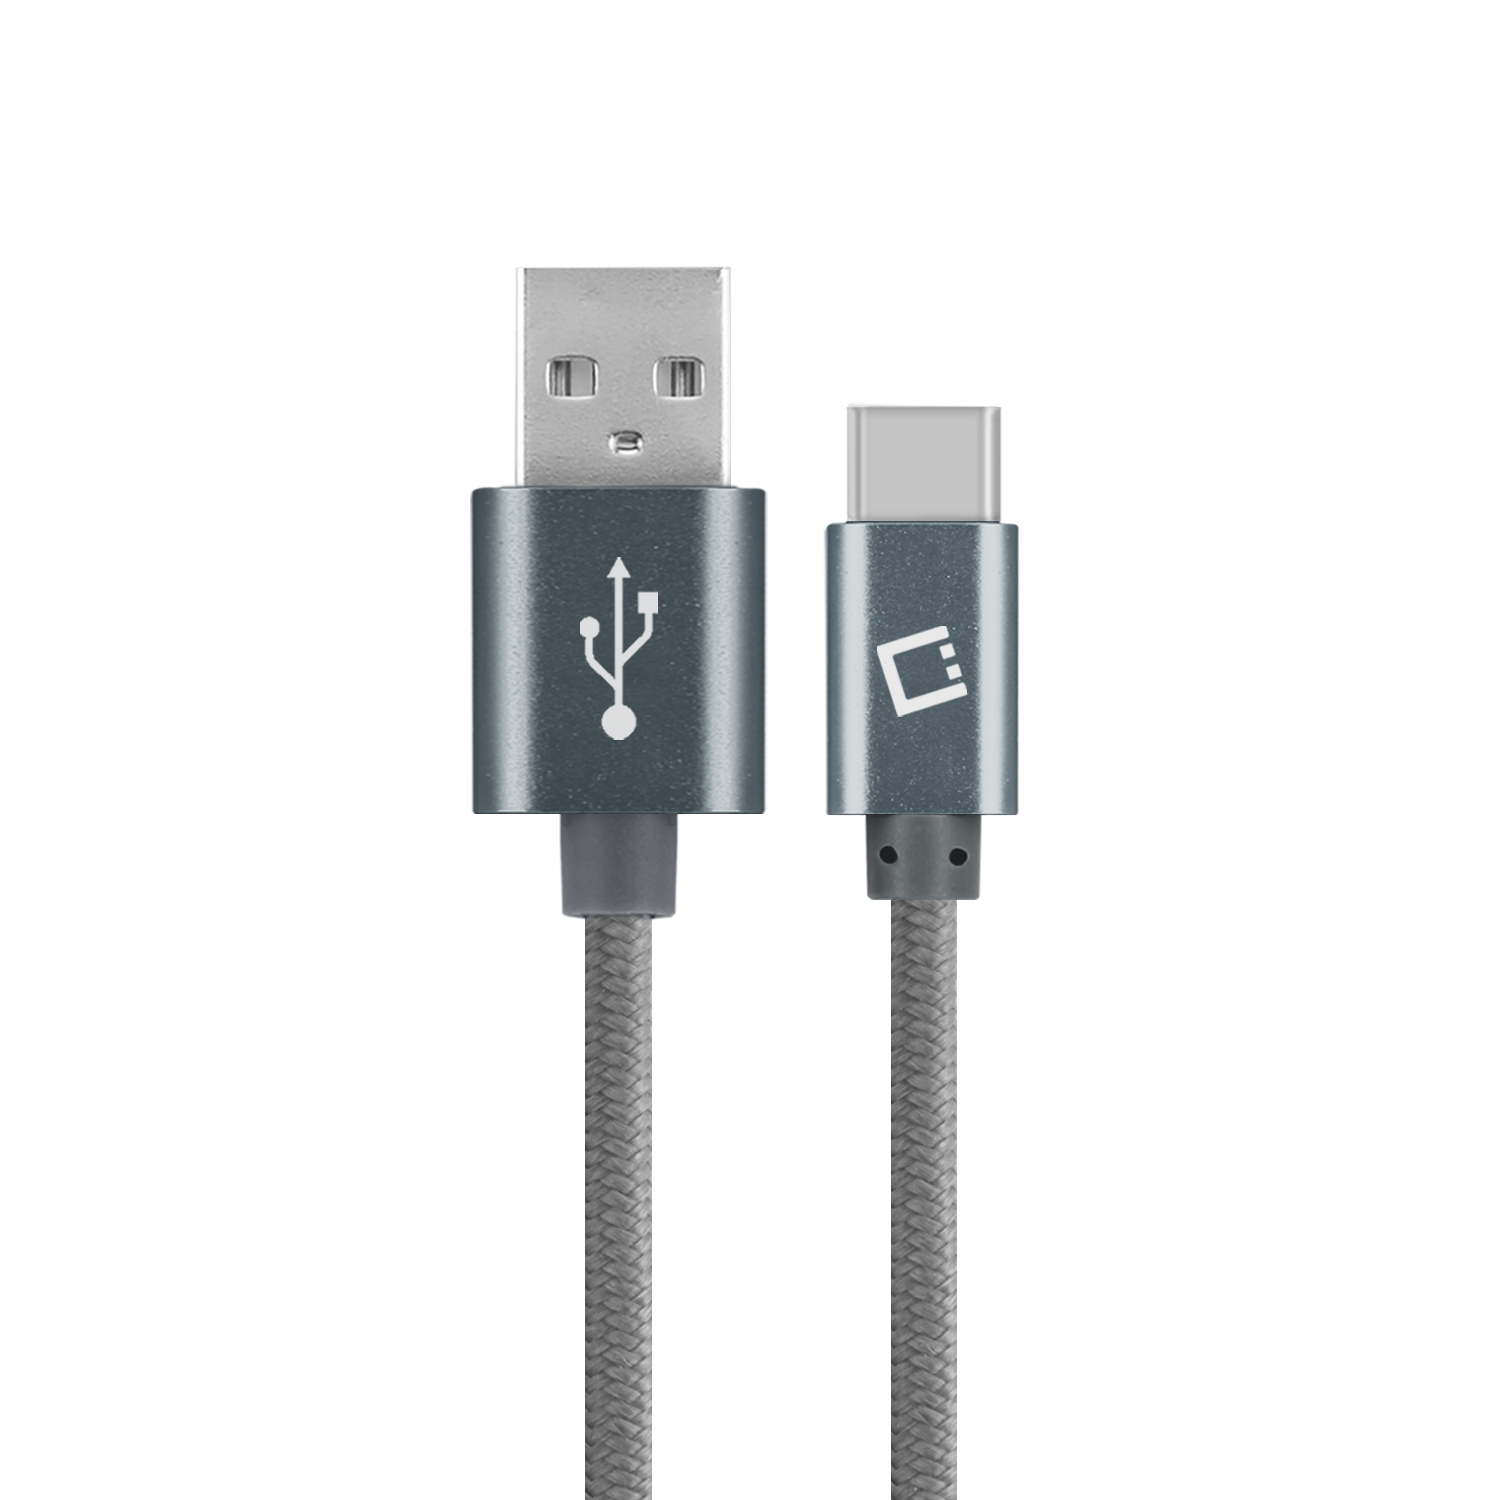 ZTE Axon M USB Type-C To Type-A Braided Data Power Cable Grey 4ft Braided